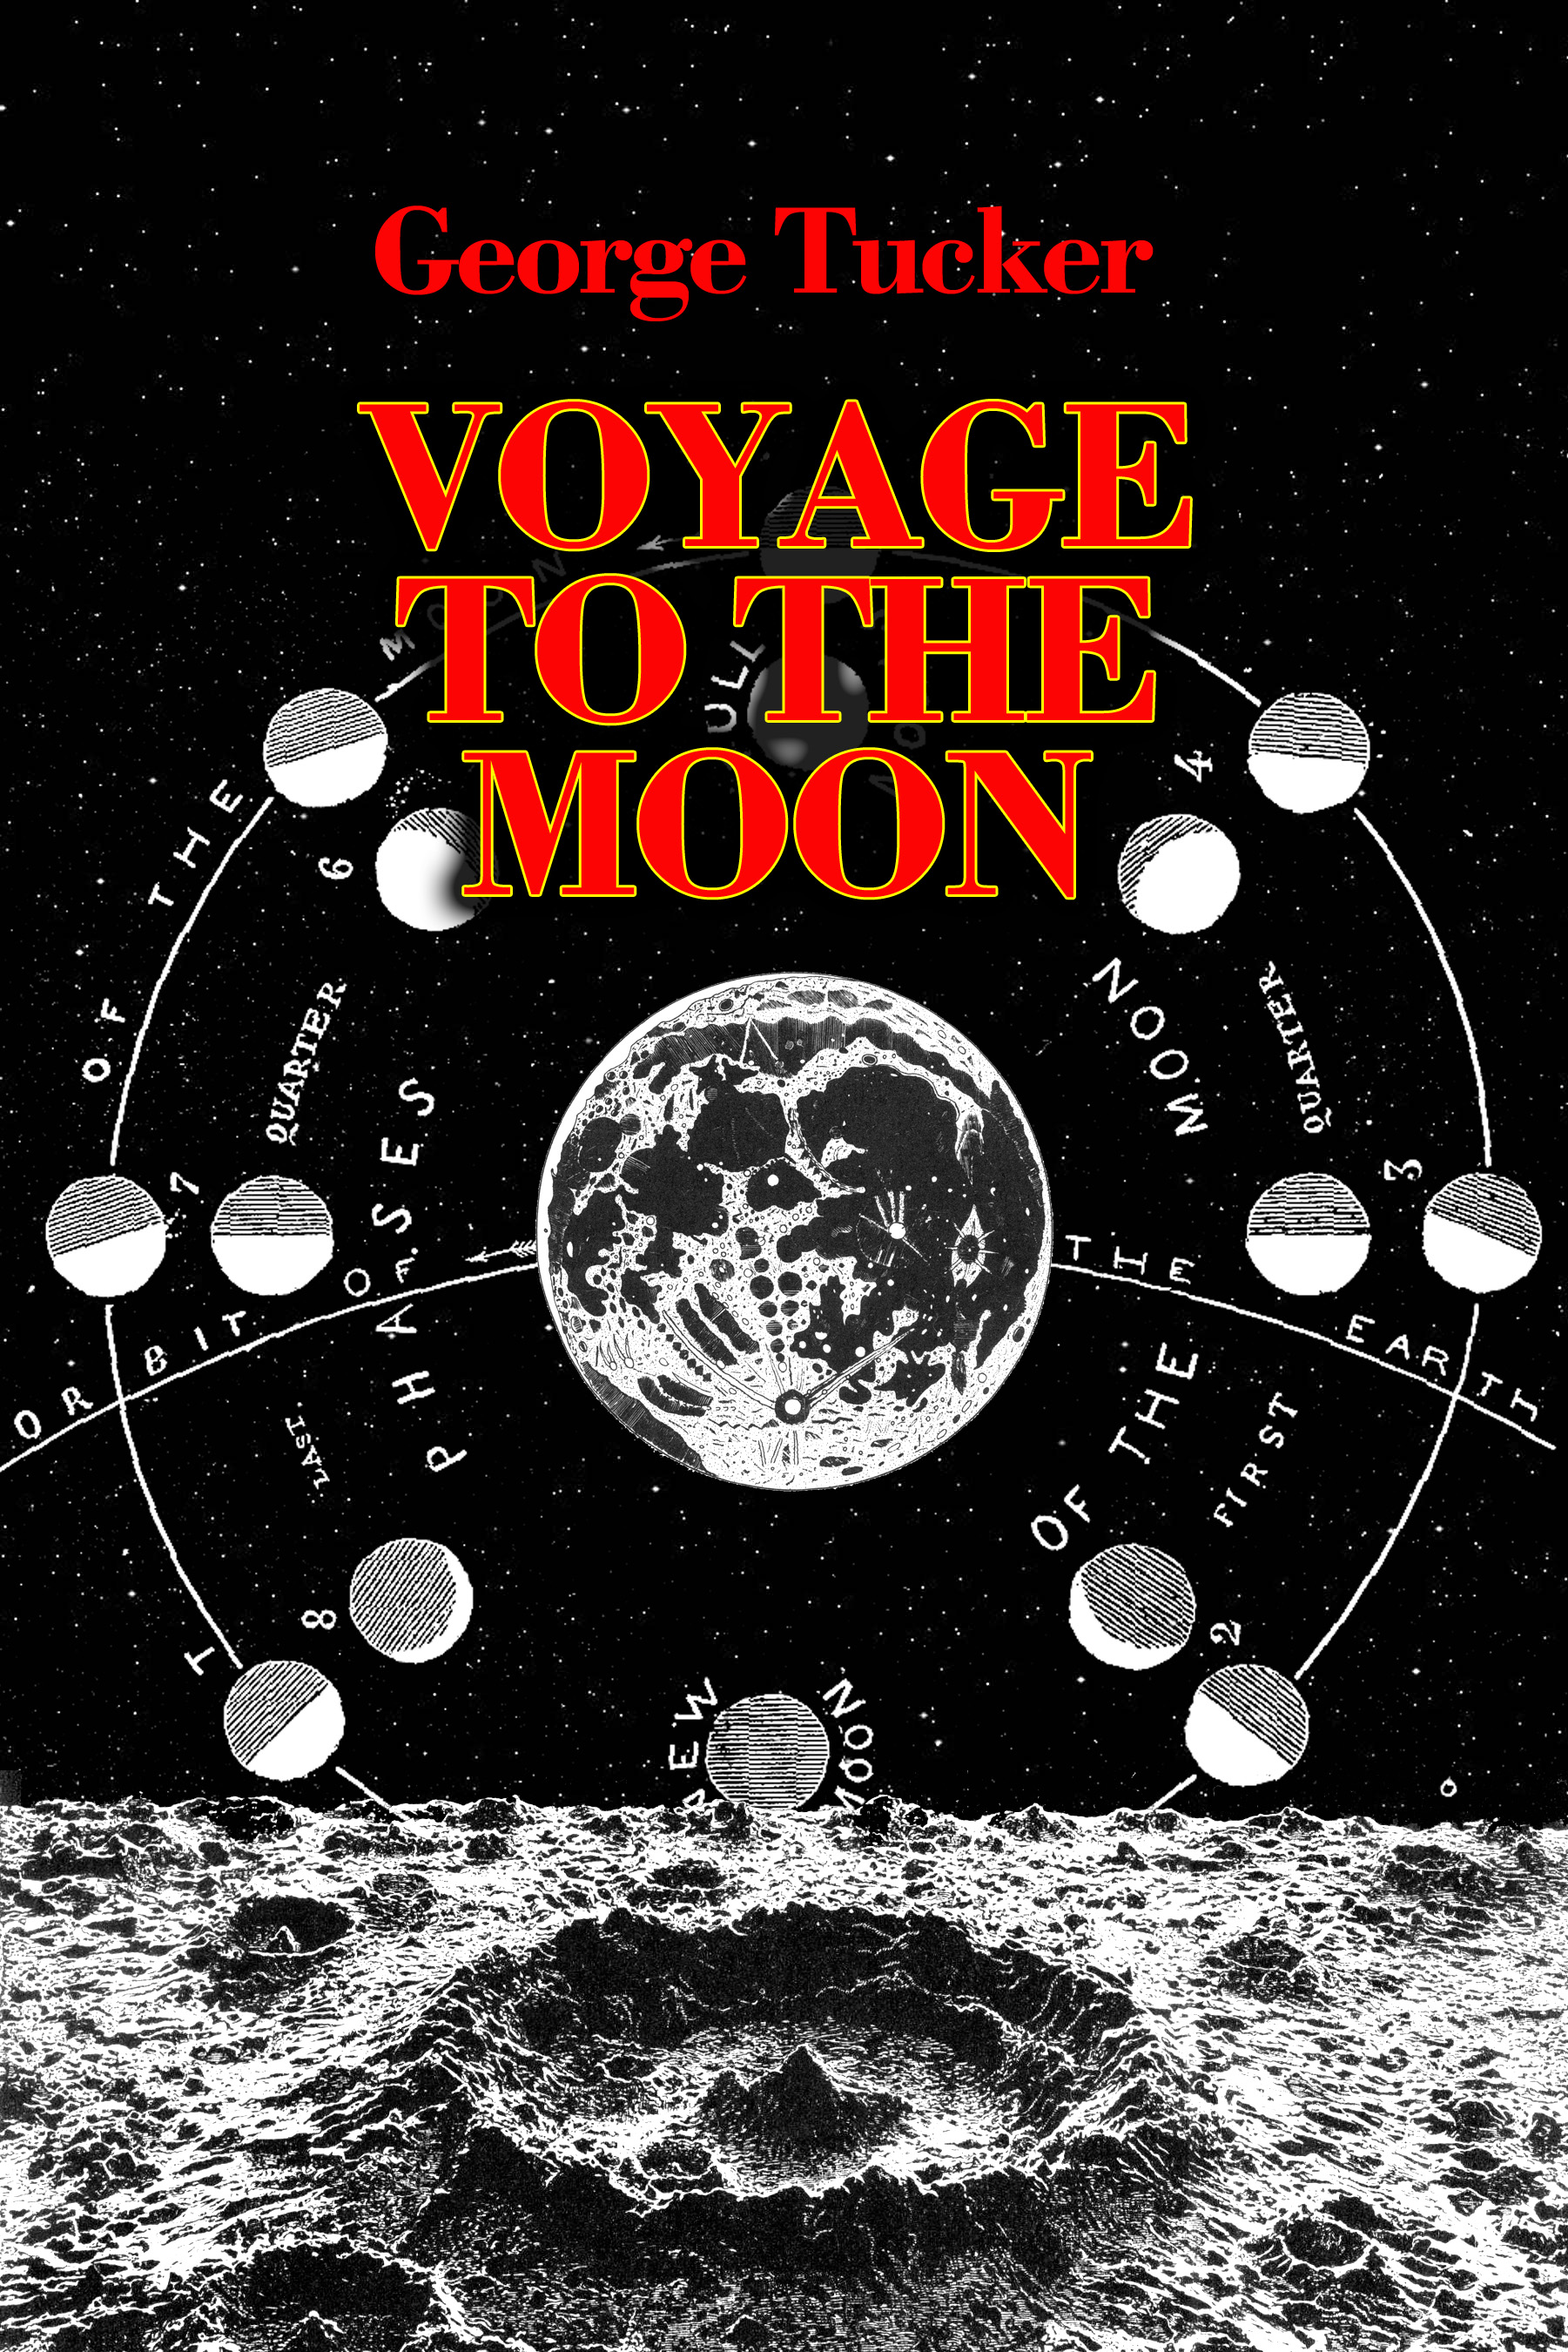 Ron Miller  George Tucker - A Voyage to the Moon